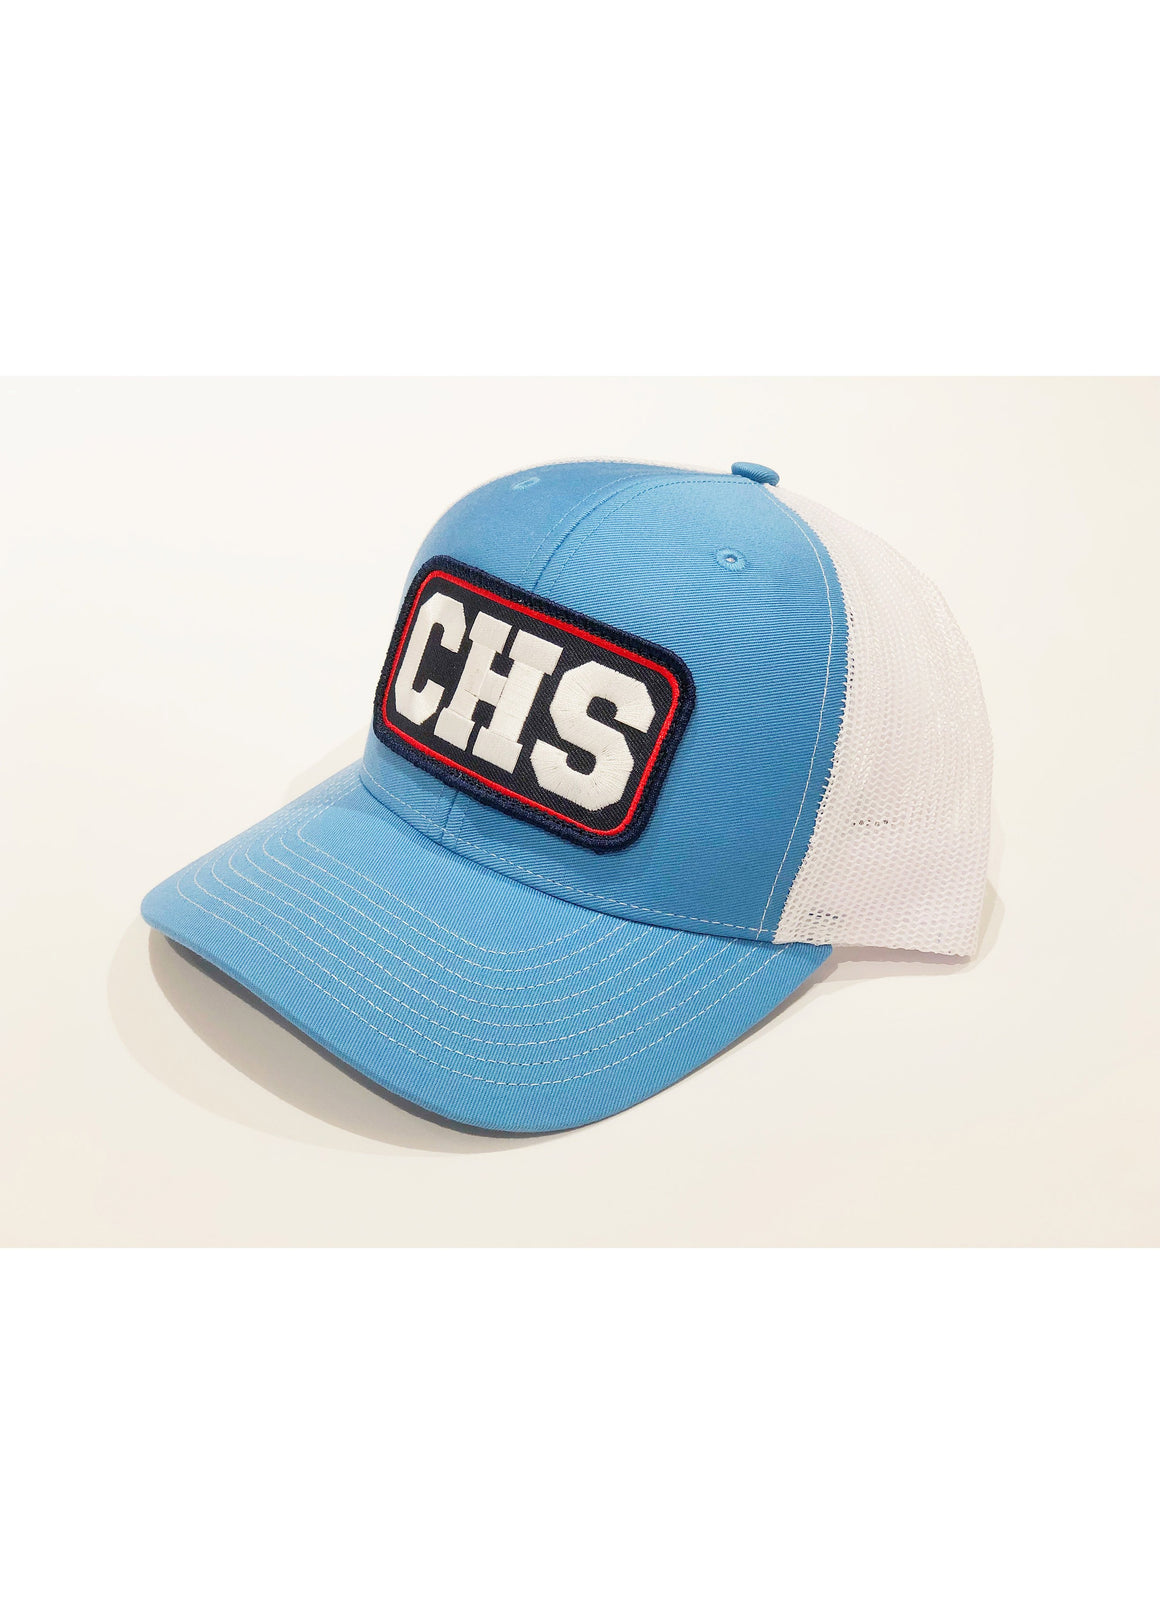 CHS Trucker Hat | Columbia Blue